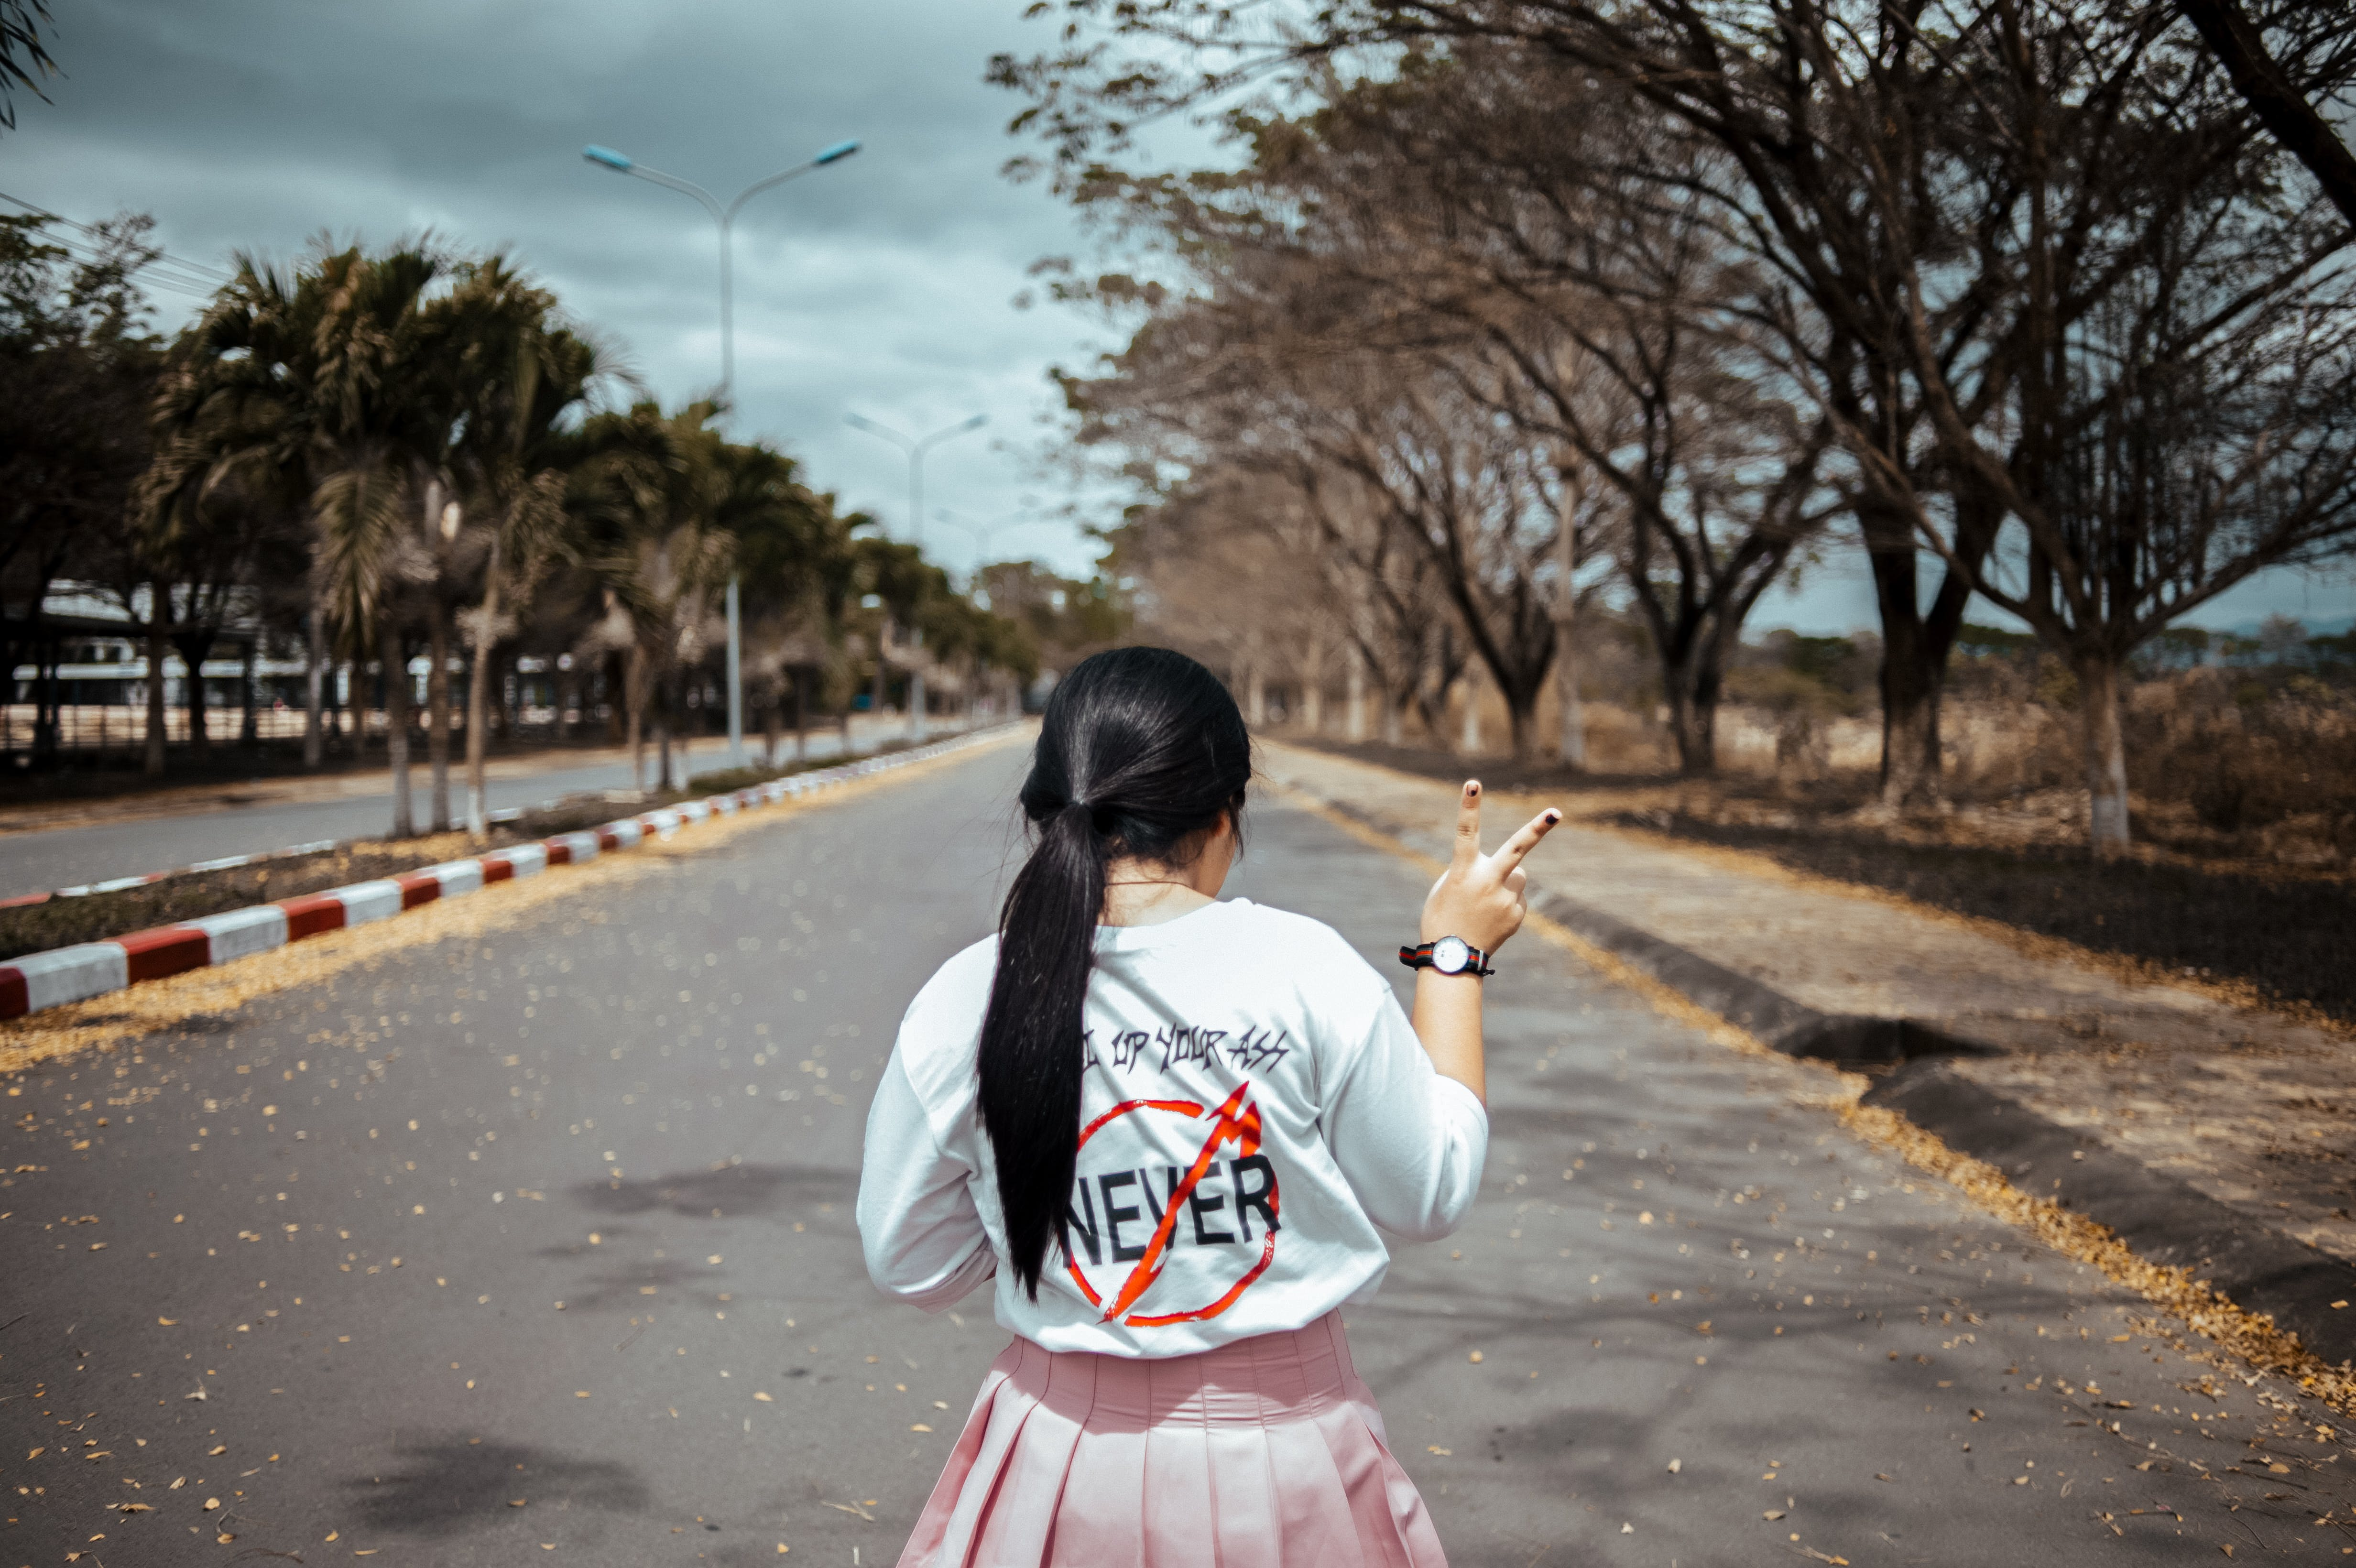 Woman Wearing White Long-sleeved Shirt and Pink Pleated Skirt Standing on Asphalt Road Between Green Trees Under Gray Sky at Daytime